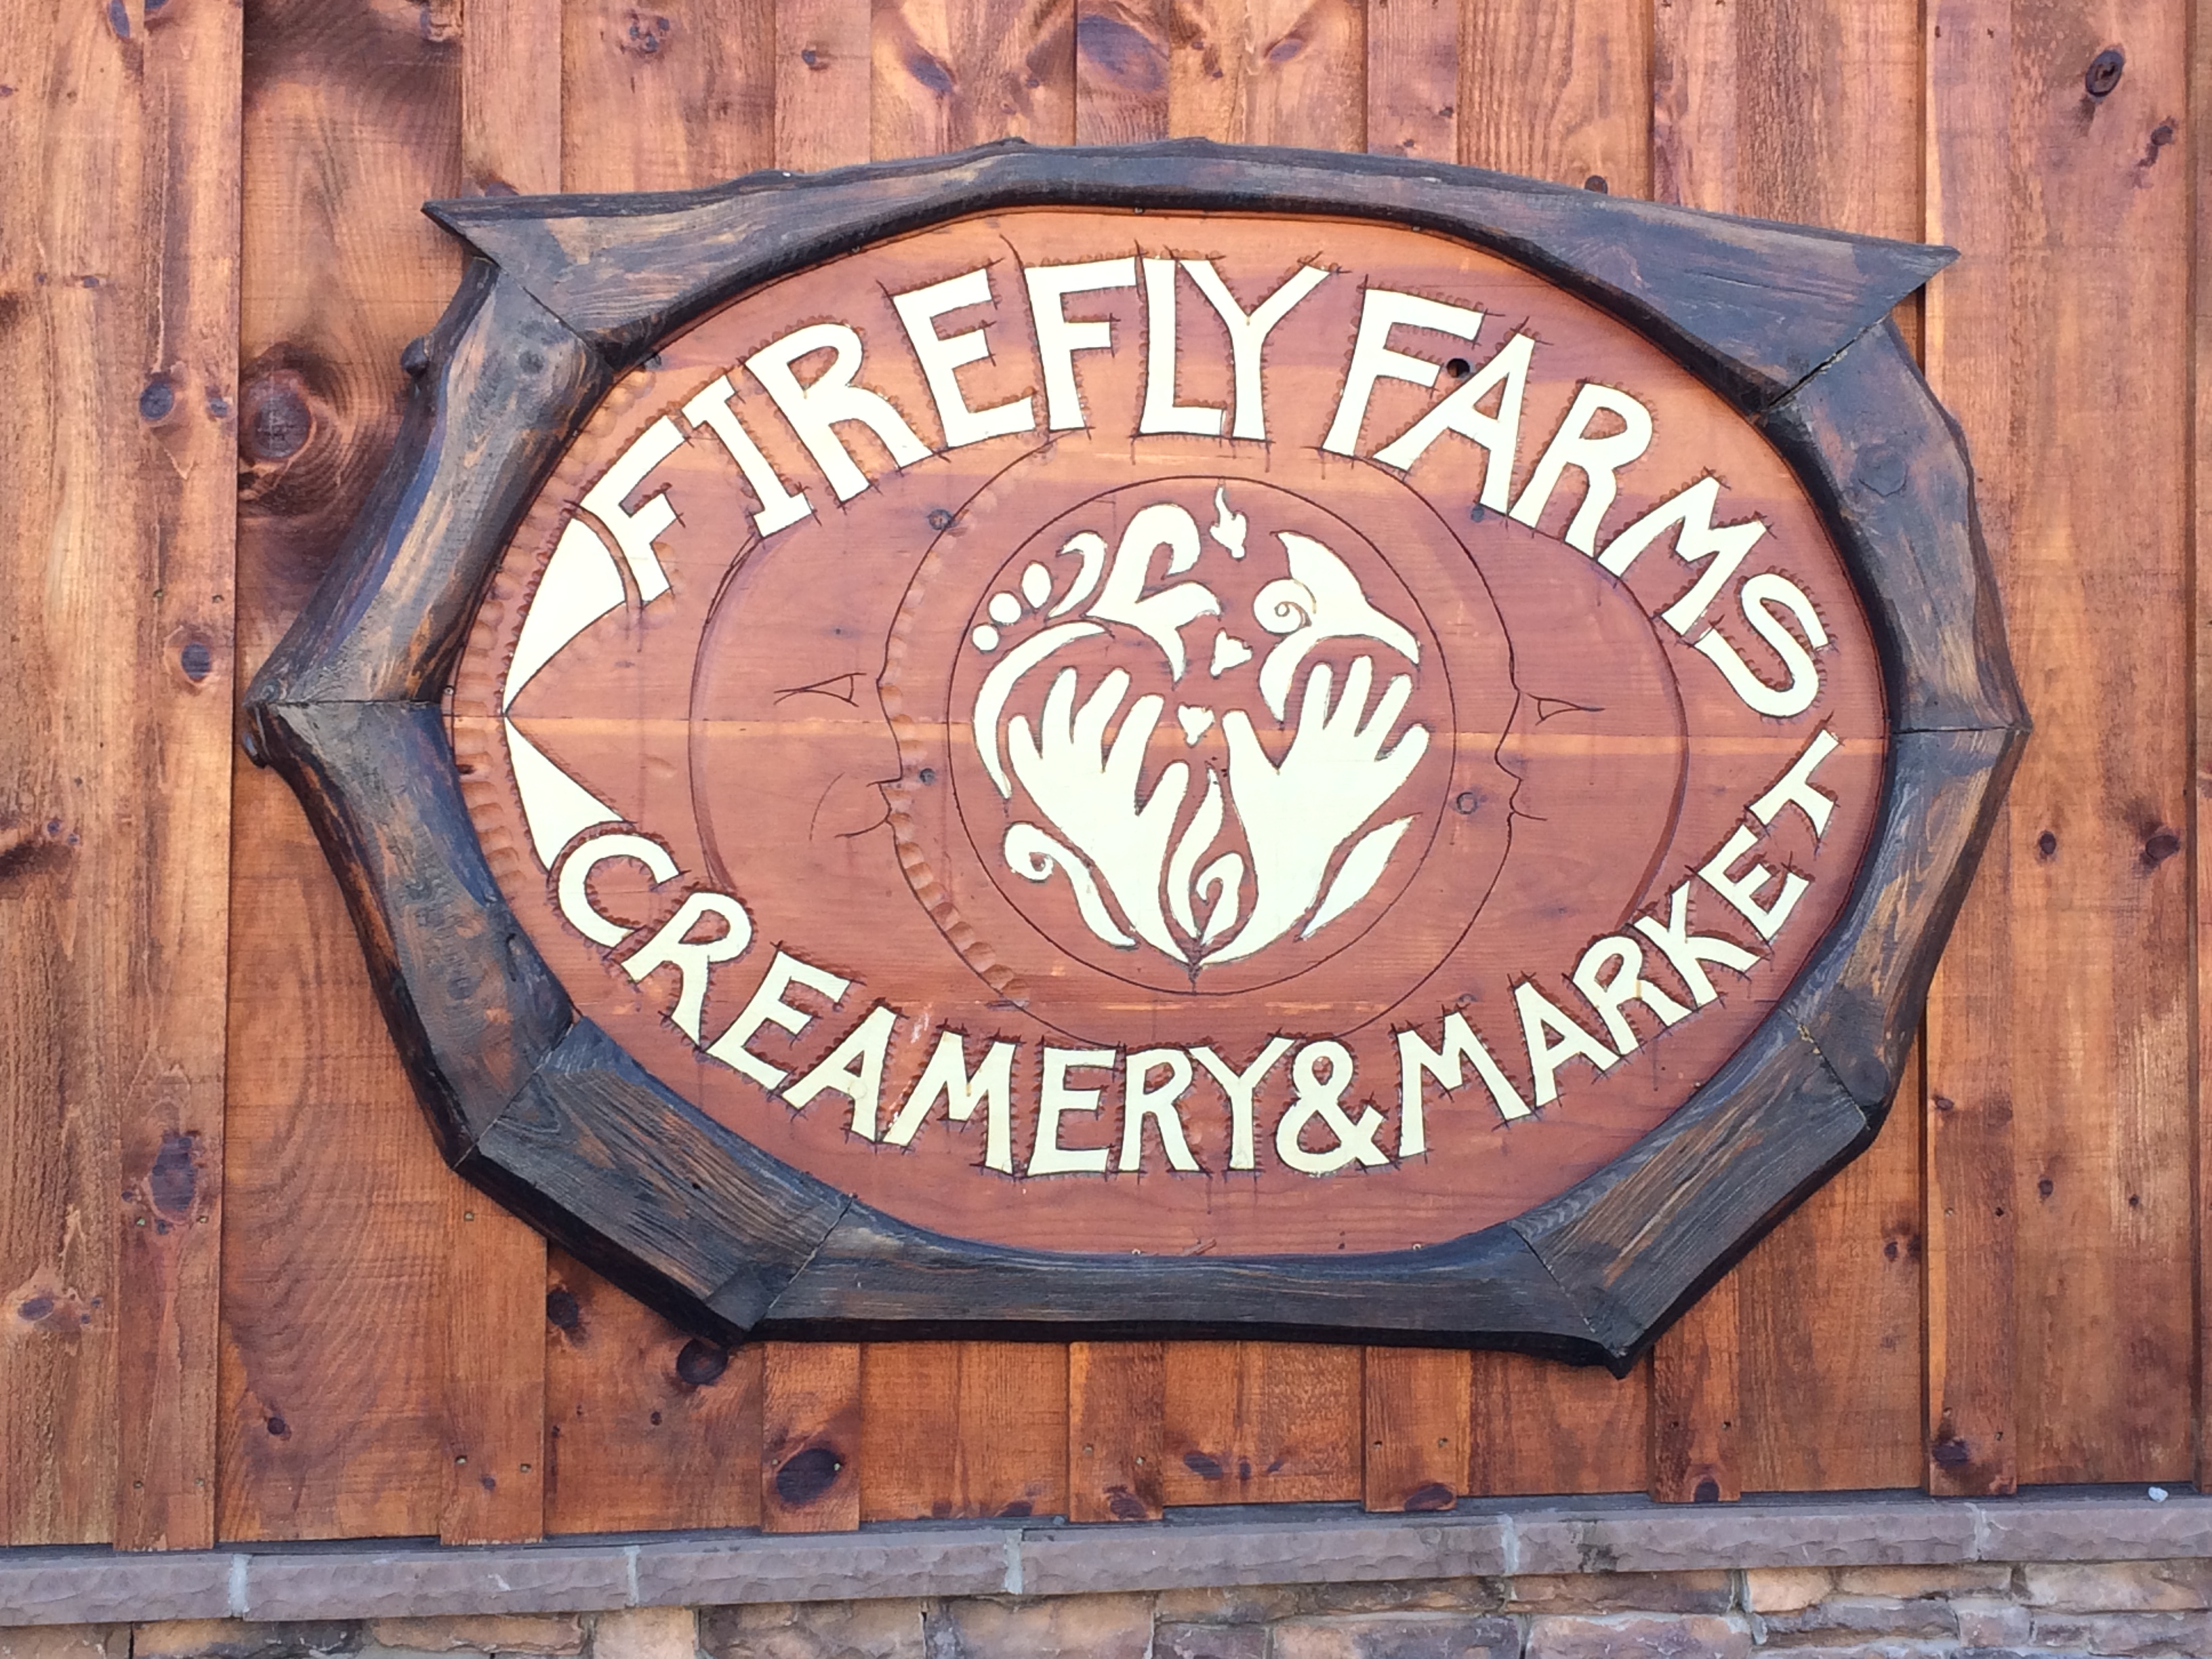 Firefly Creamery Sign